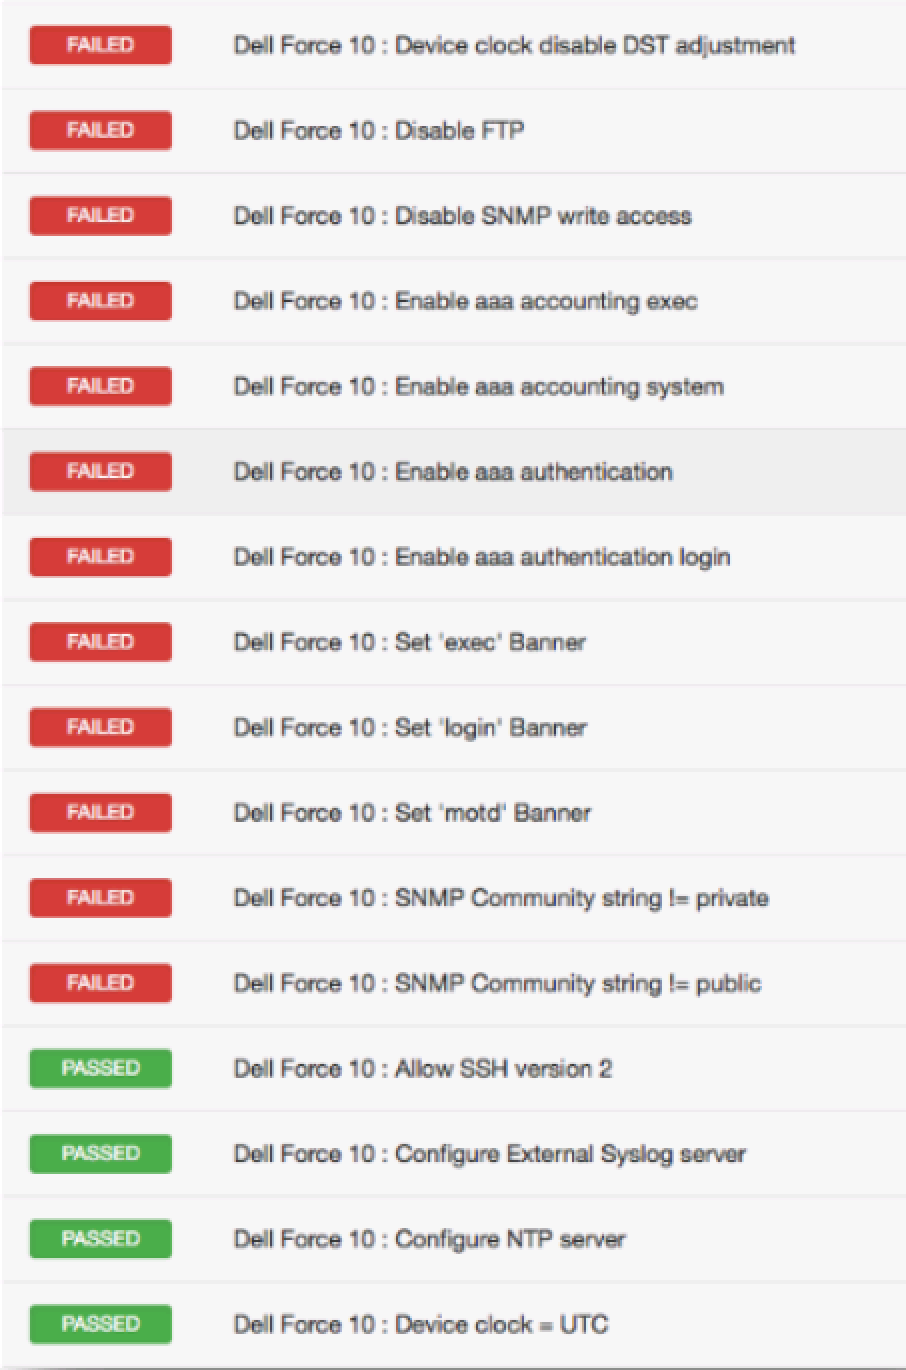 Dell Force10 Compliance File Reference (Nessus Compliance Checks)